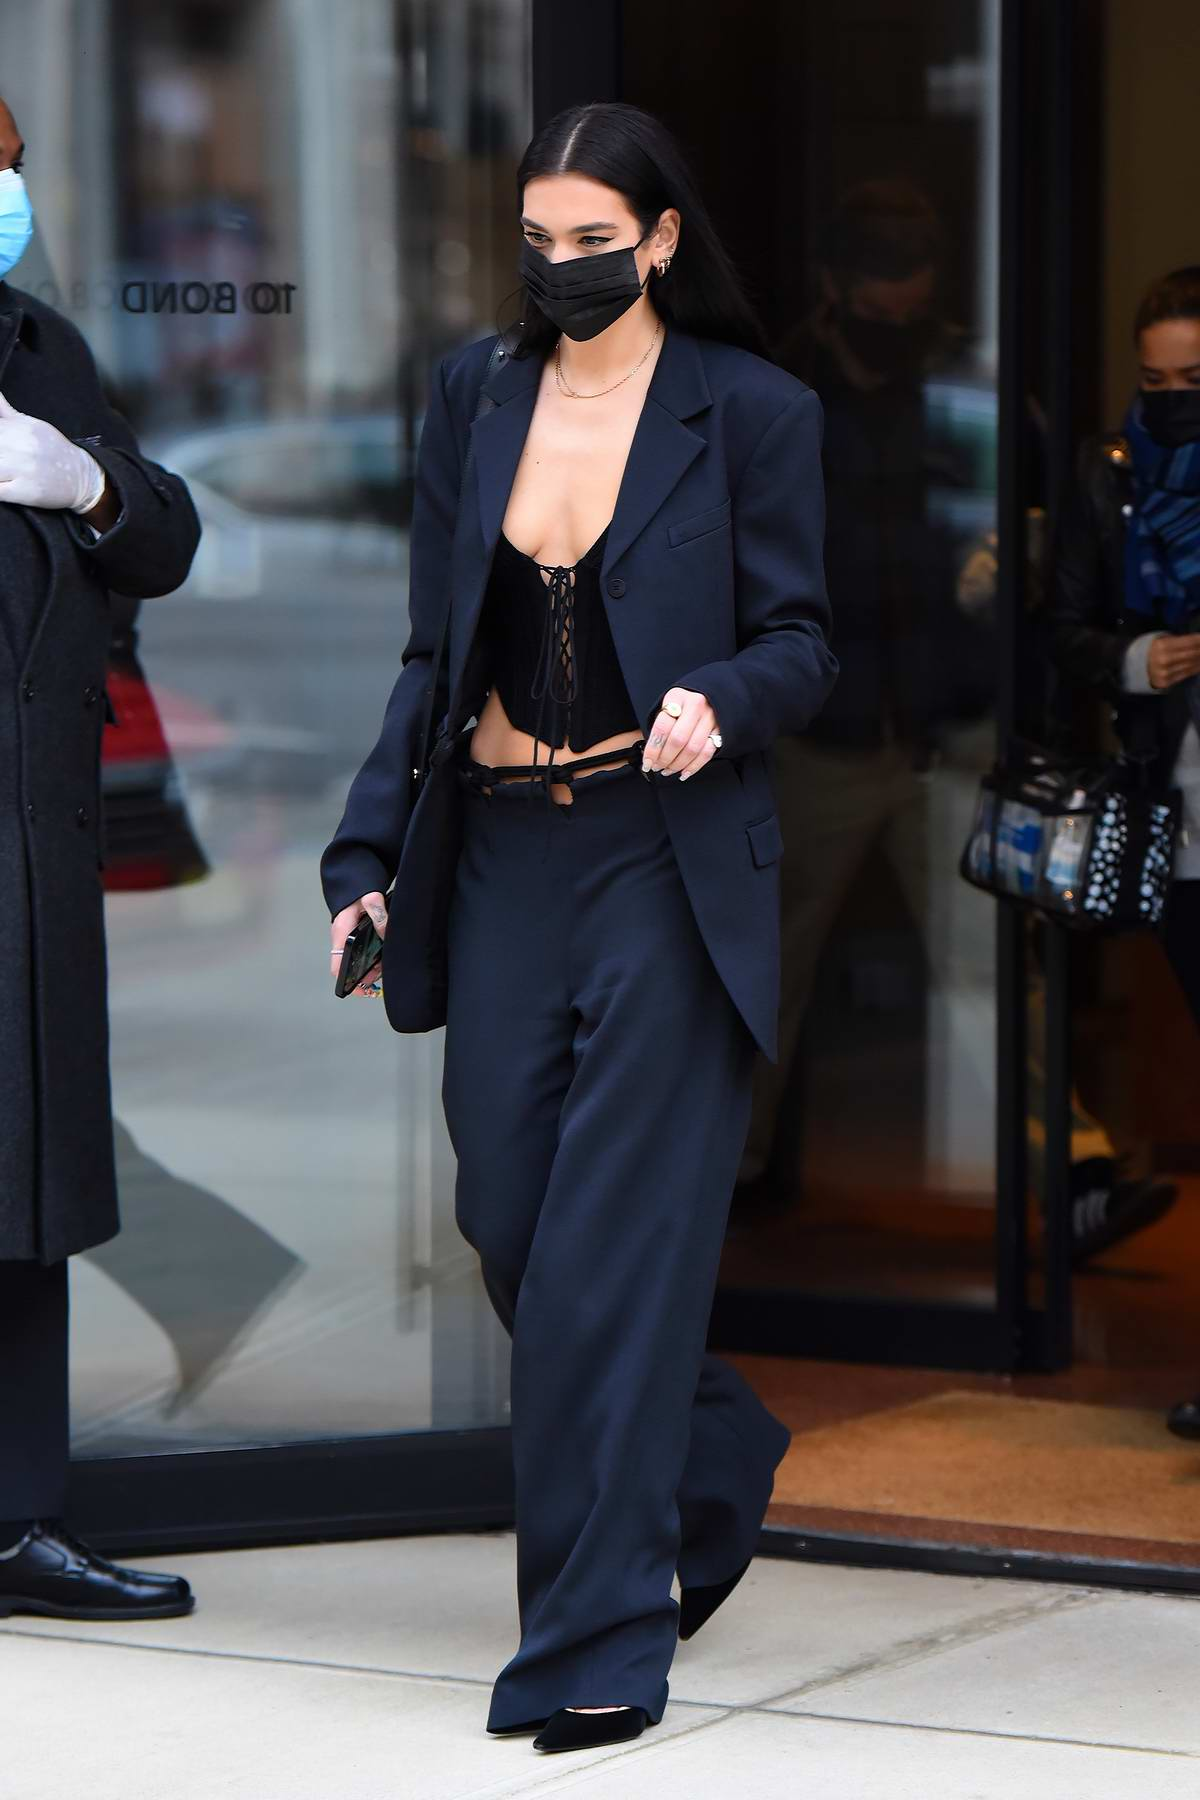 Dua Lipa looked sharp in a tailored black outfit as she stepped out in Manhattan, New York